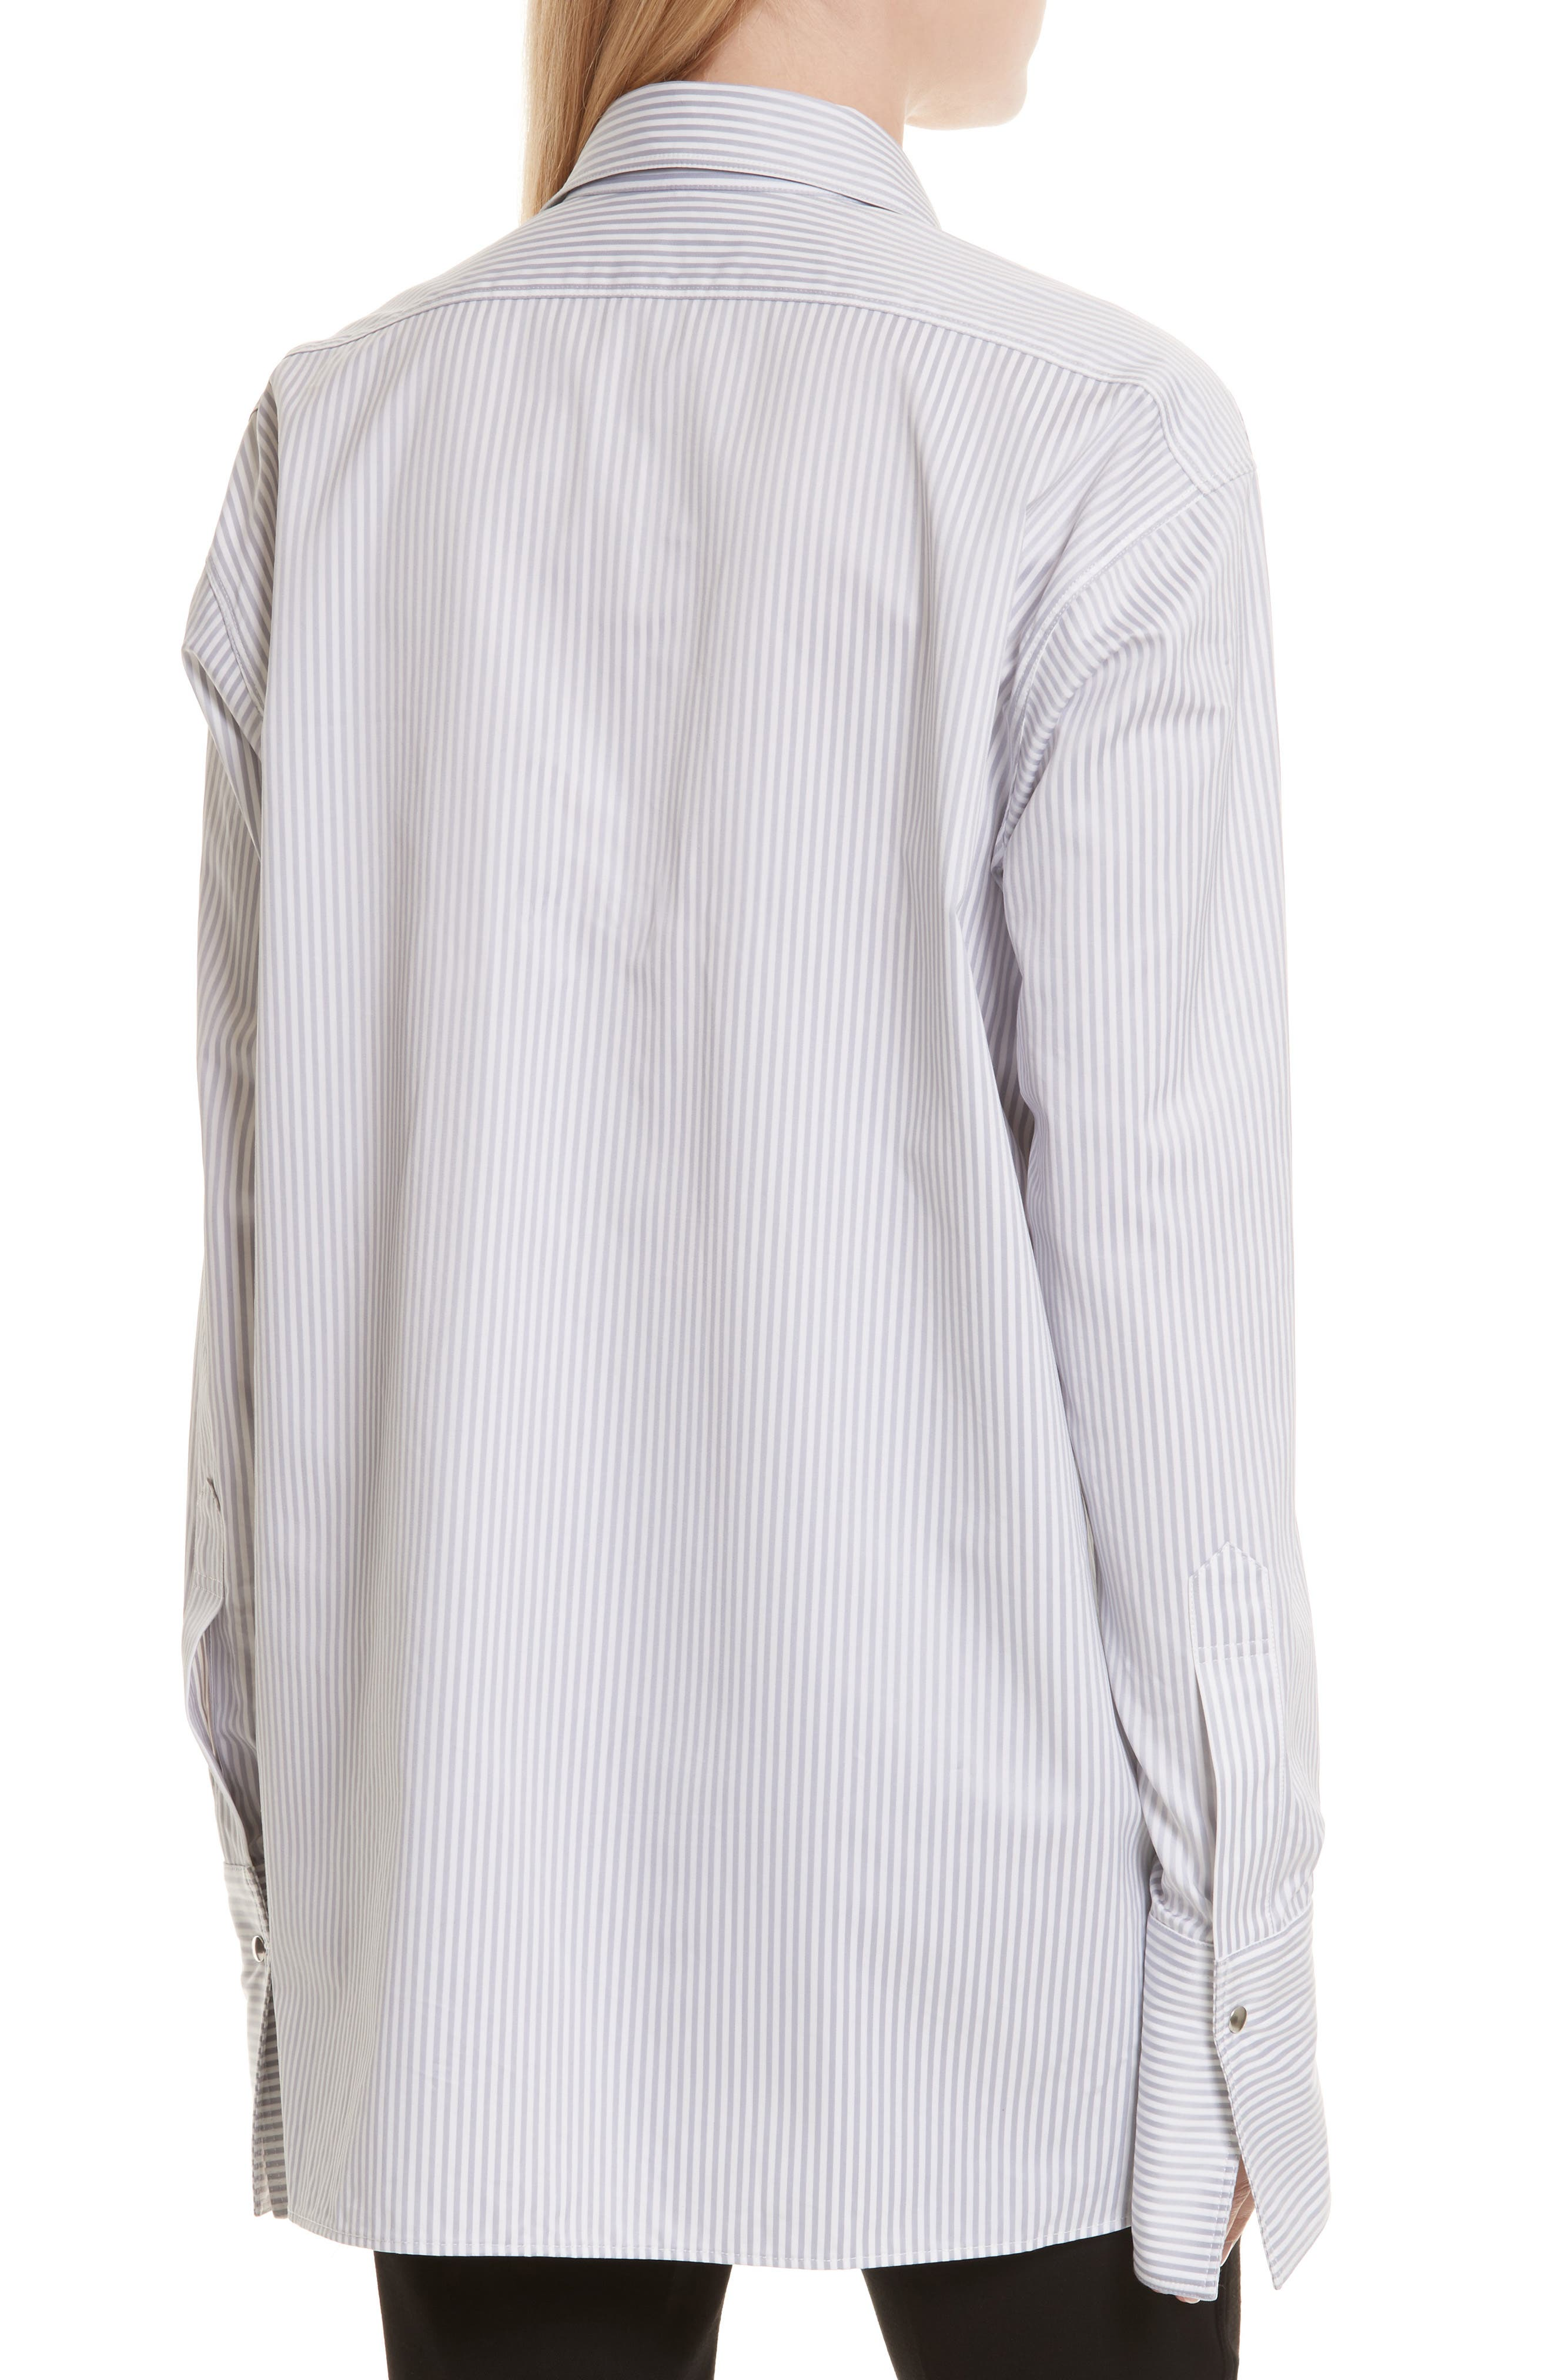 Stripe Poplin Blouse,                             Alternate thumbnail 3, color,                             Grey Multi